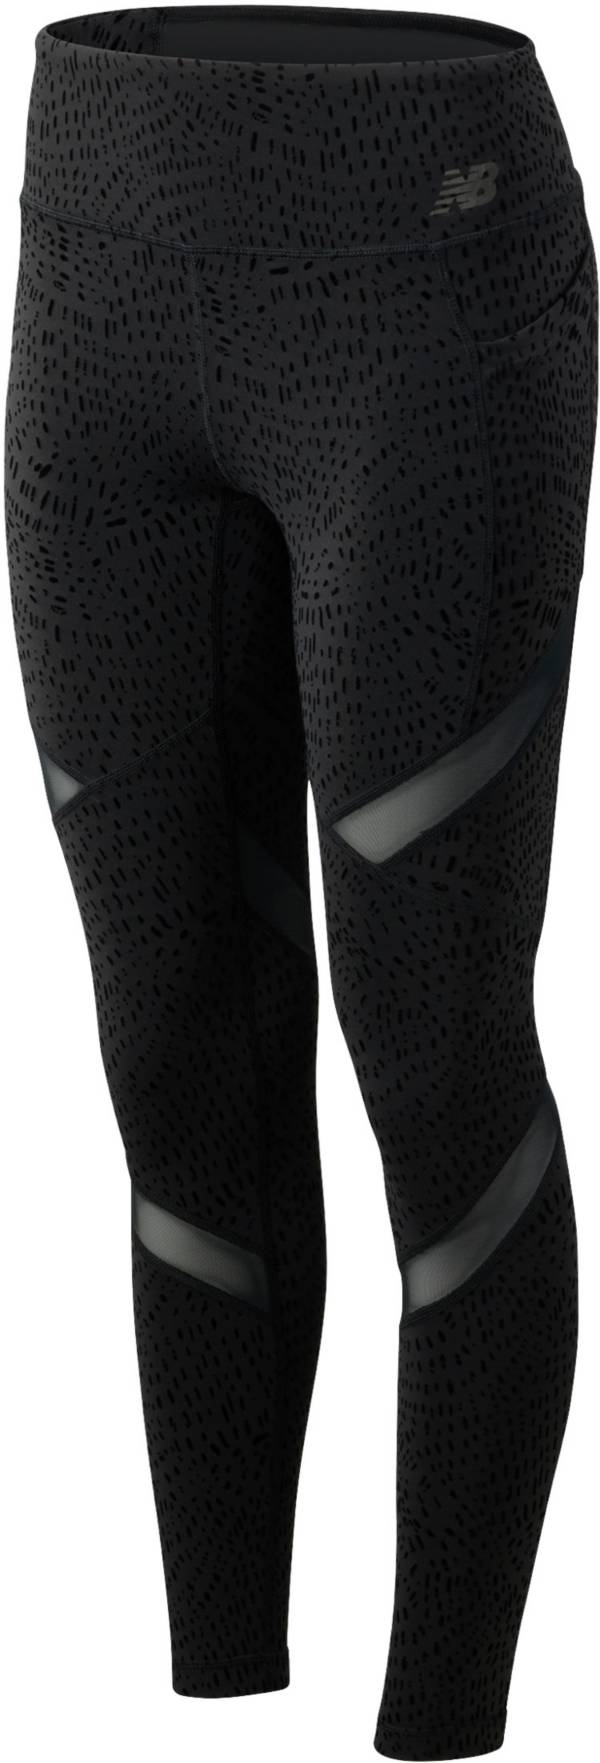 New Balance Women's High-Rise Transform Pocket Tights product image